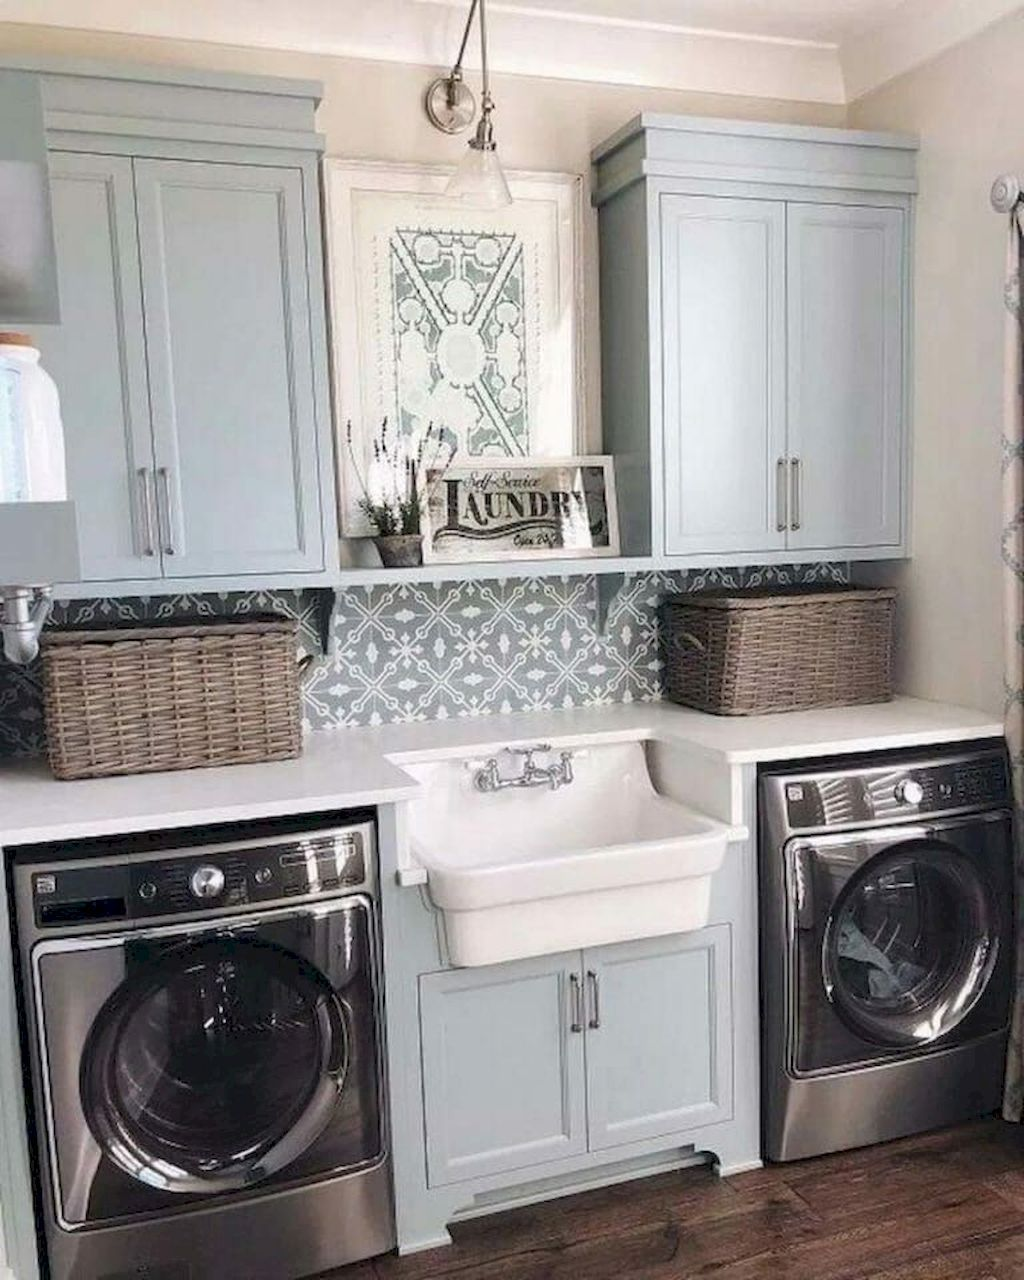 17 Laundry Room Cabinet Ideas To Maximize Your Home Space Dream